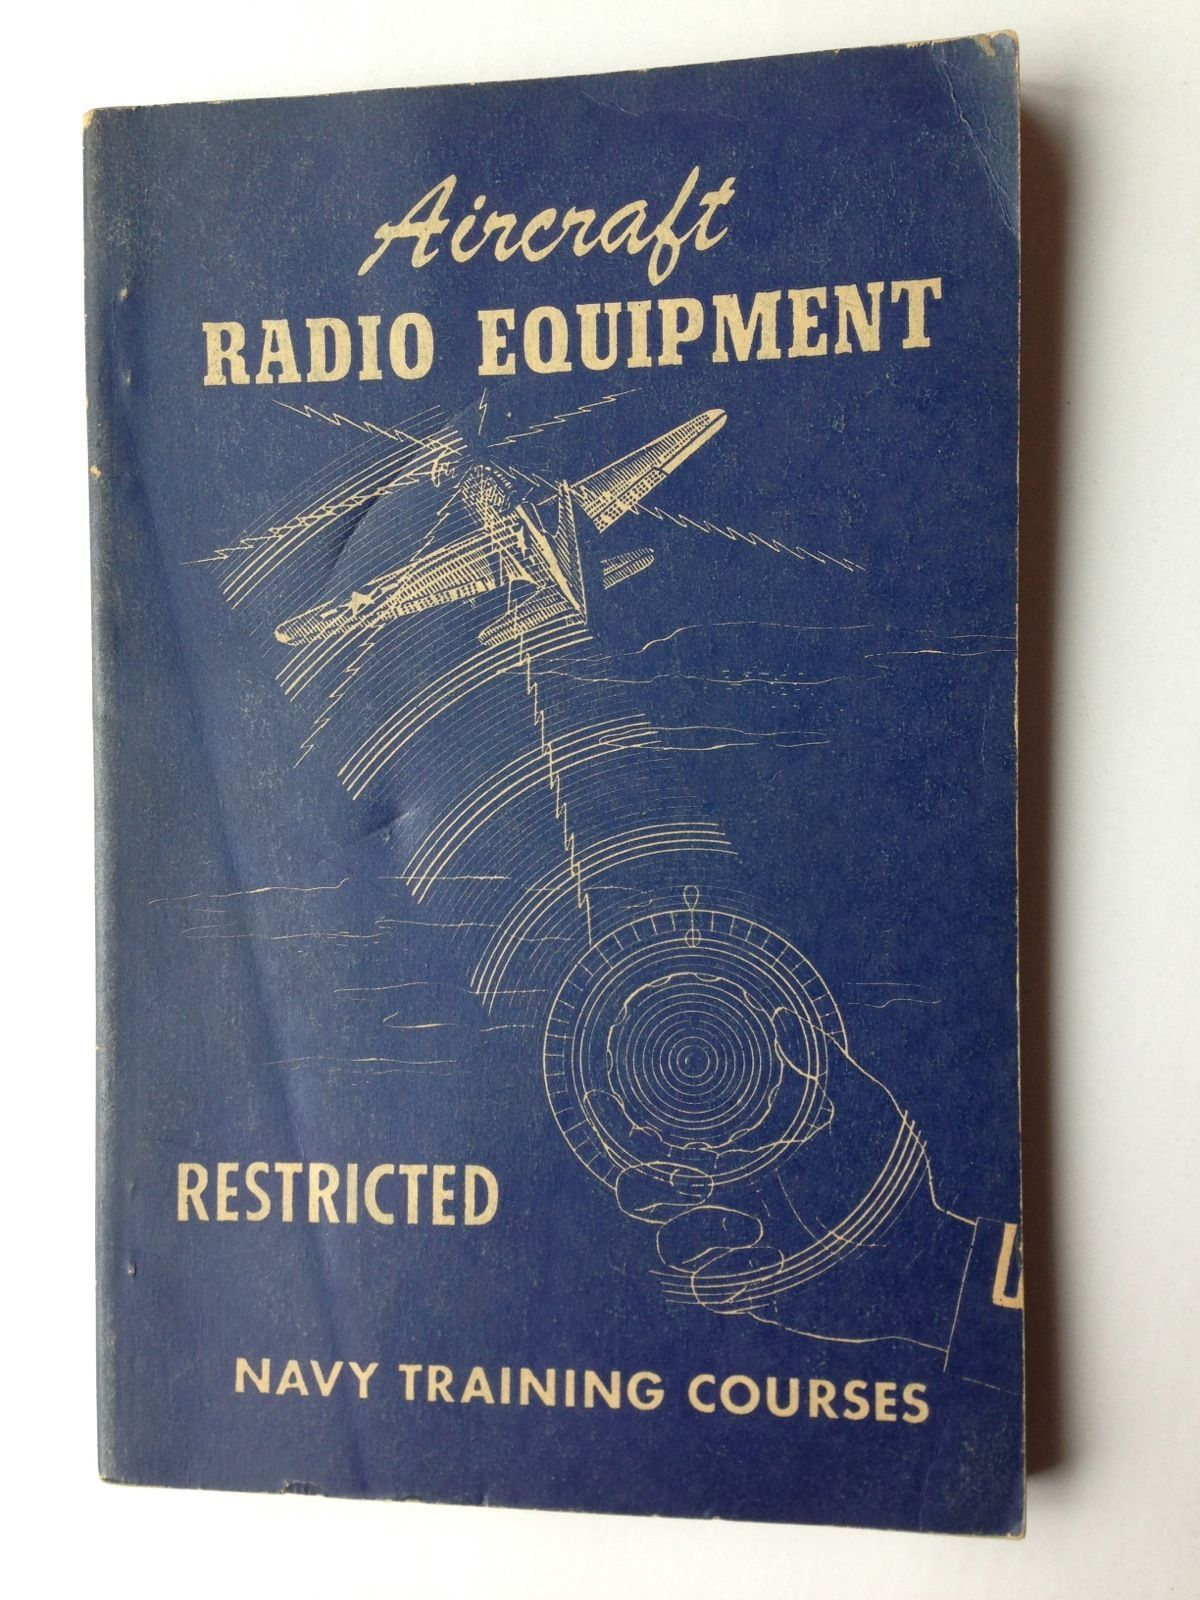 AIRCRAFT RADIO EQUIPMENT 1944 Ed. US NAVY Training Course Book WORLD WAR II